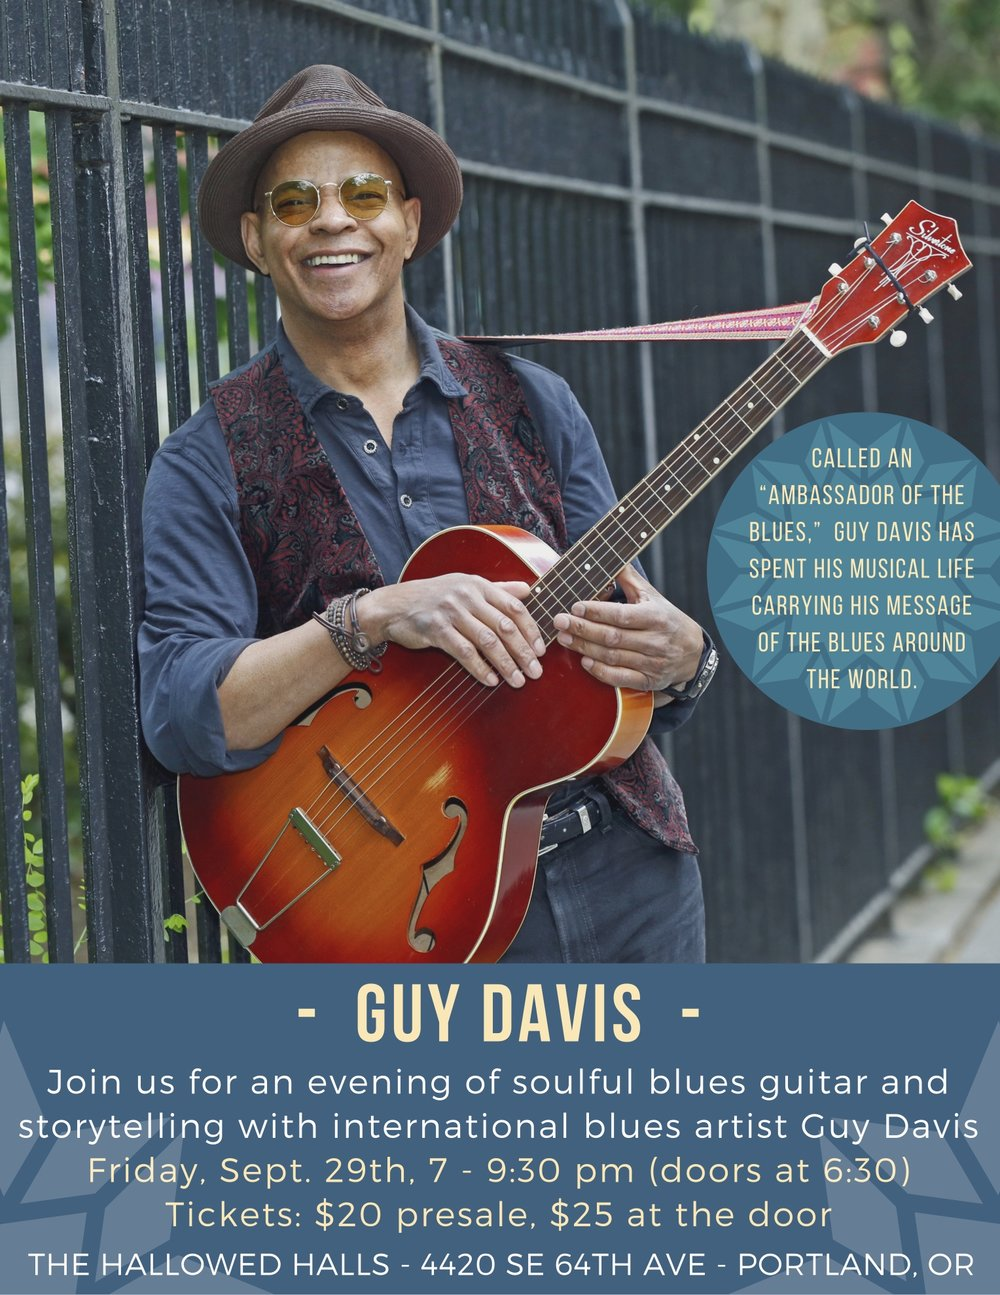 Join Guy Daivis for a night of blues at The Hallowed Halls in Portland, OR.